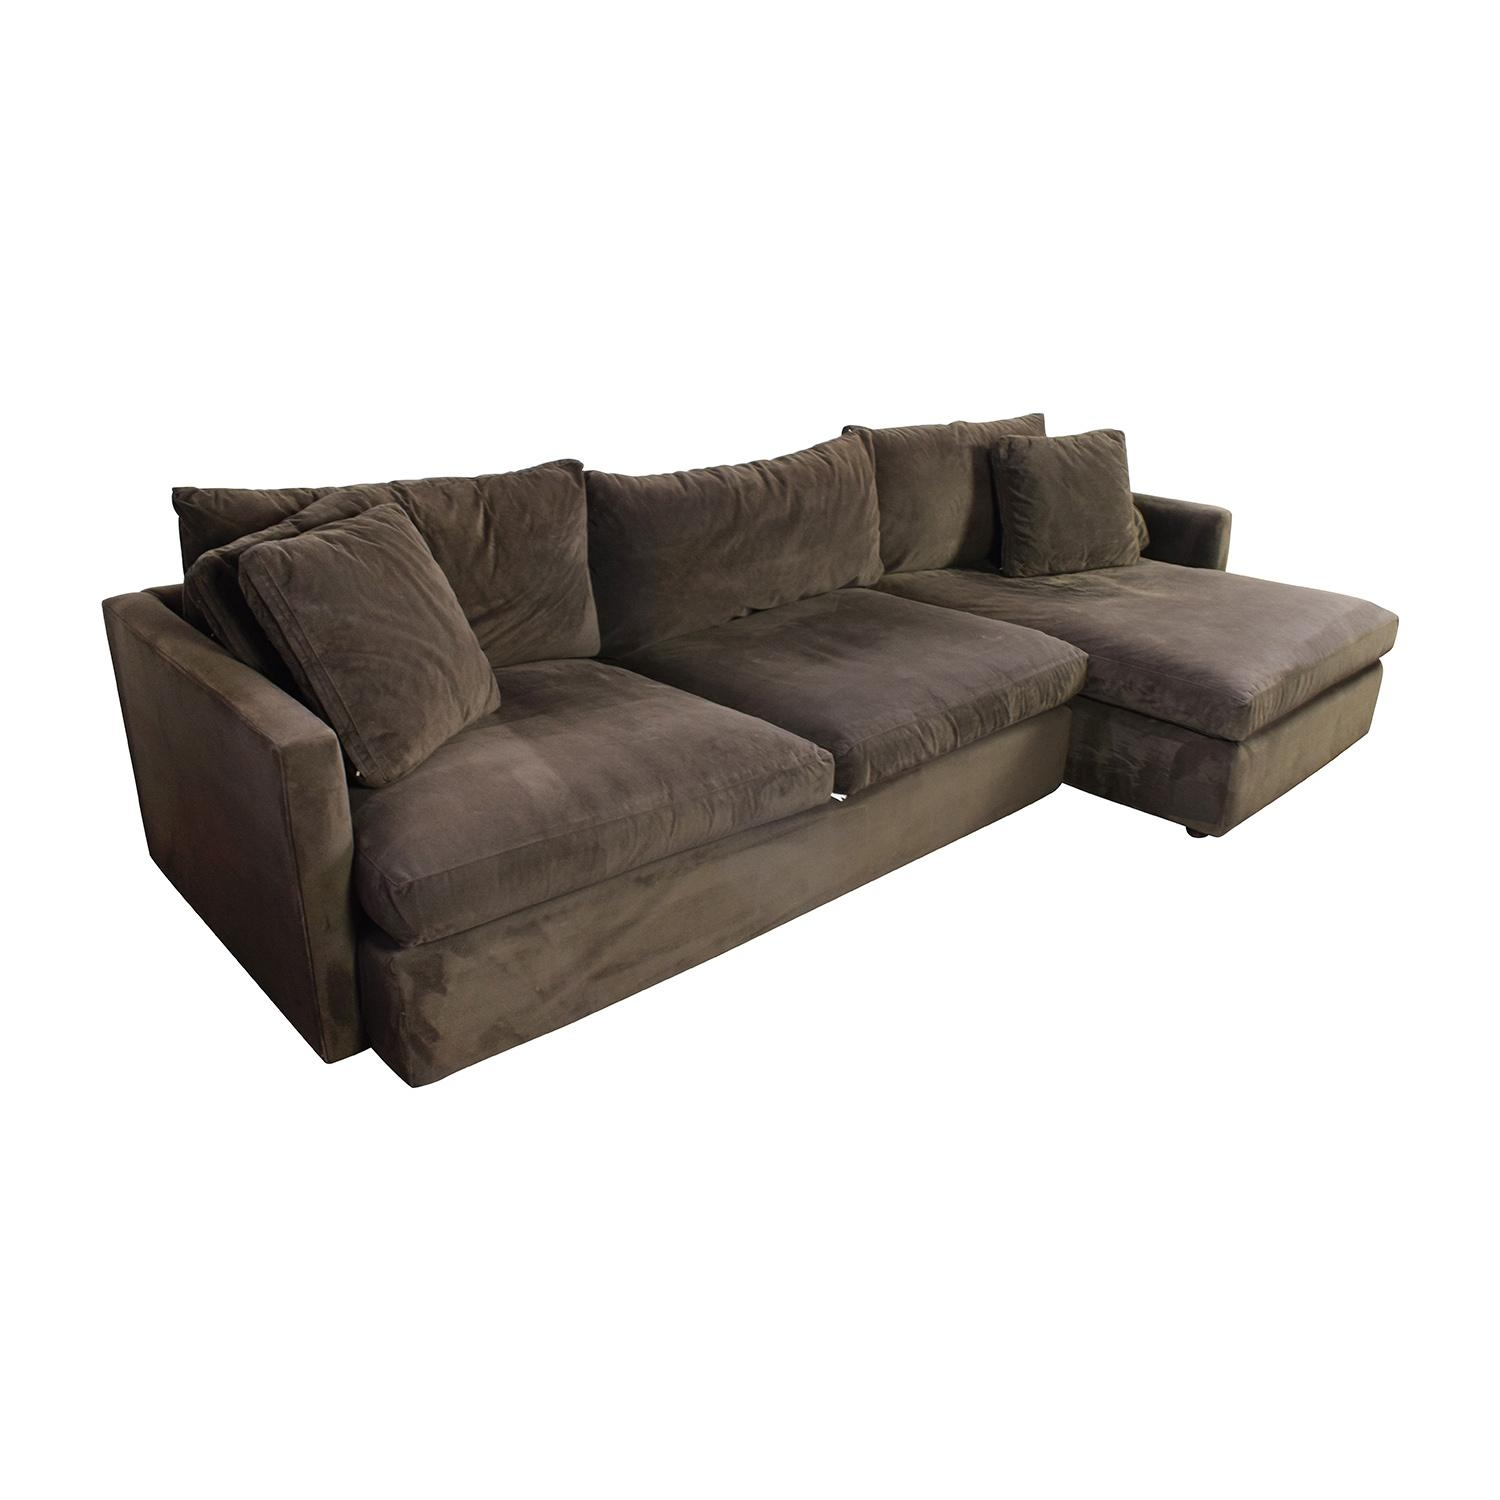 89% Off - Crate And Barrel Crate & Barrel Brown Left Arm Sectional regarding Crate And Barrel Sectional